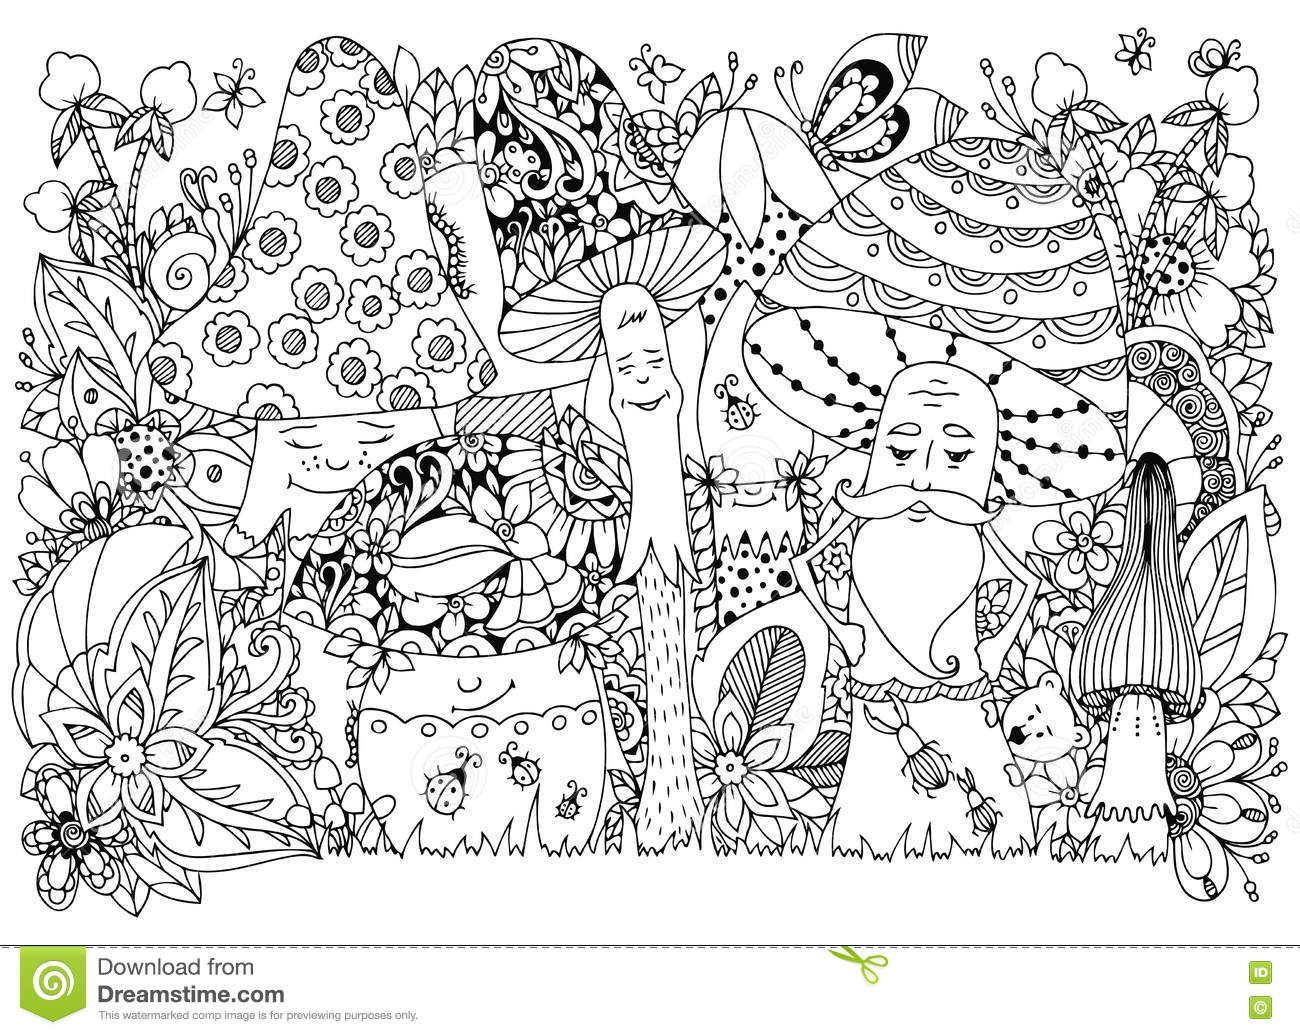 Adult Sexual Coloring Pages Pdf